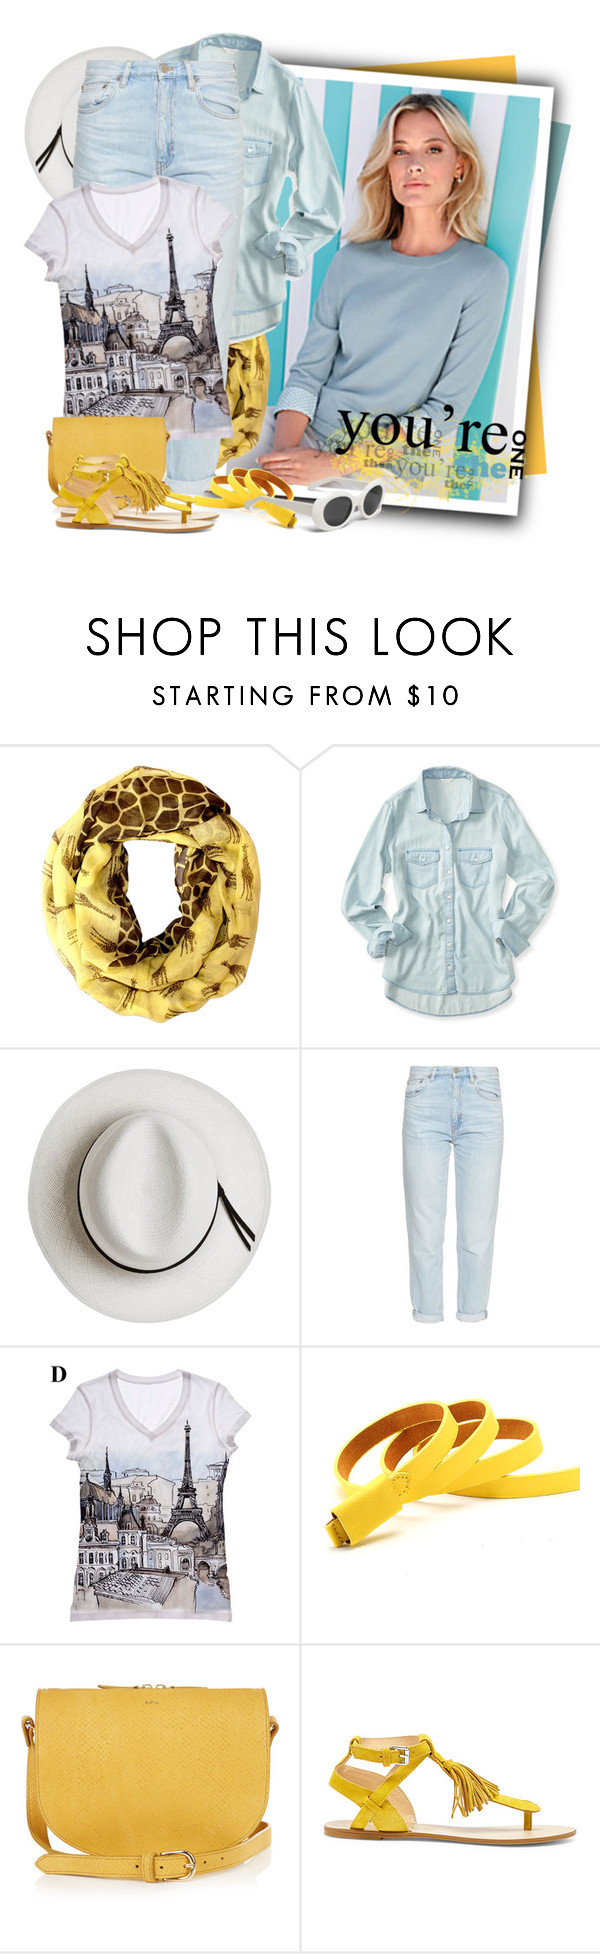 """""""Sole Society Pandora Fringe Flat Sandal"""" by tasha1973 ❤ liked on Polyvore featuring Hahn, Aéropostale, Calypso Private Label, M.i.h Jeans, A.P.C. and Sole Society"""